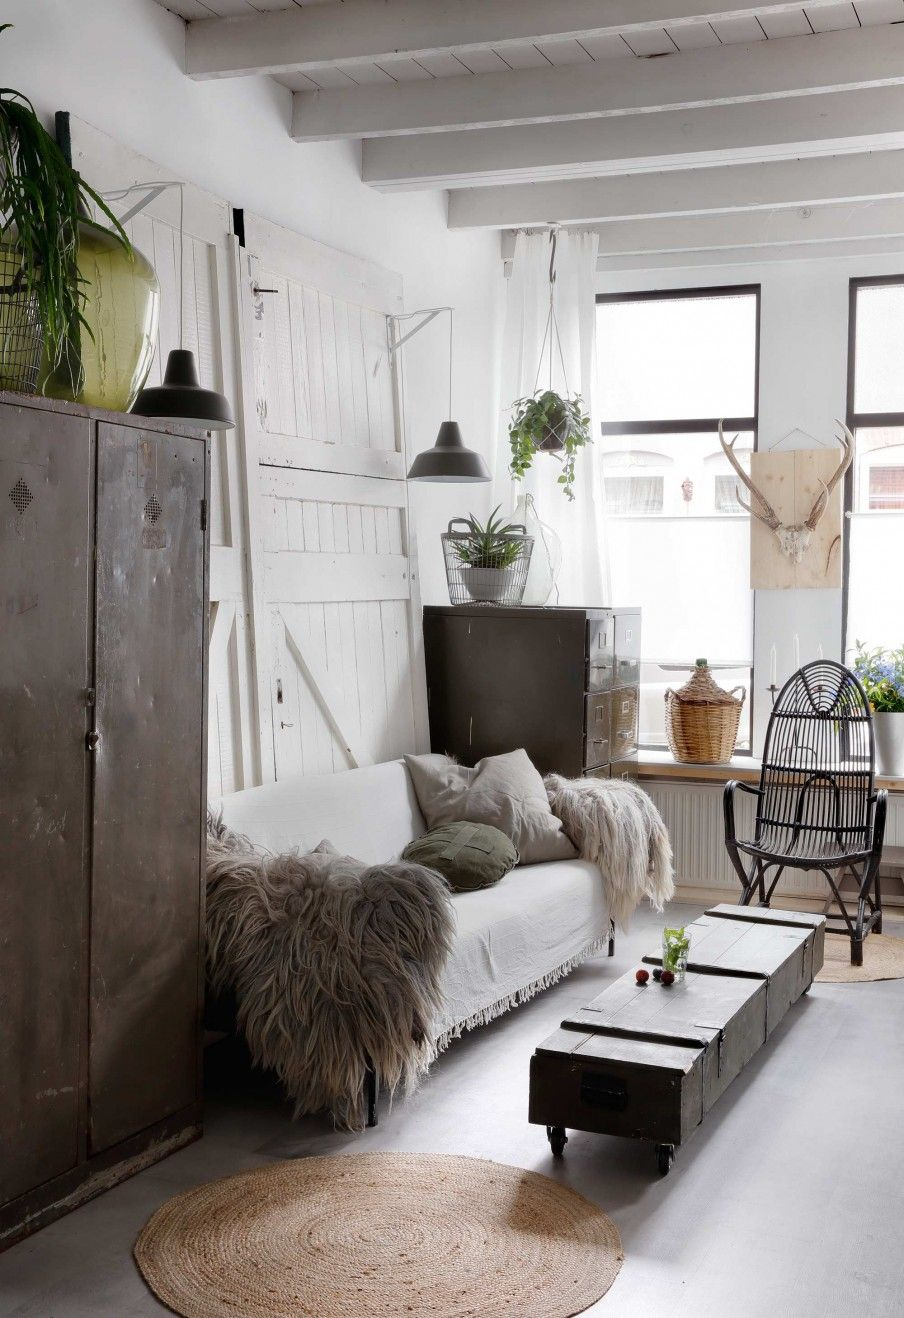 Vintage industrial living room | Looking for Shelter | Pinterest ...